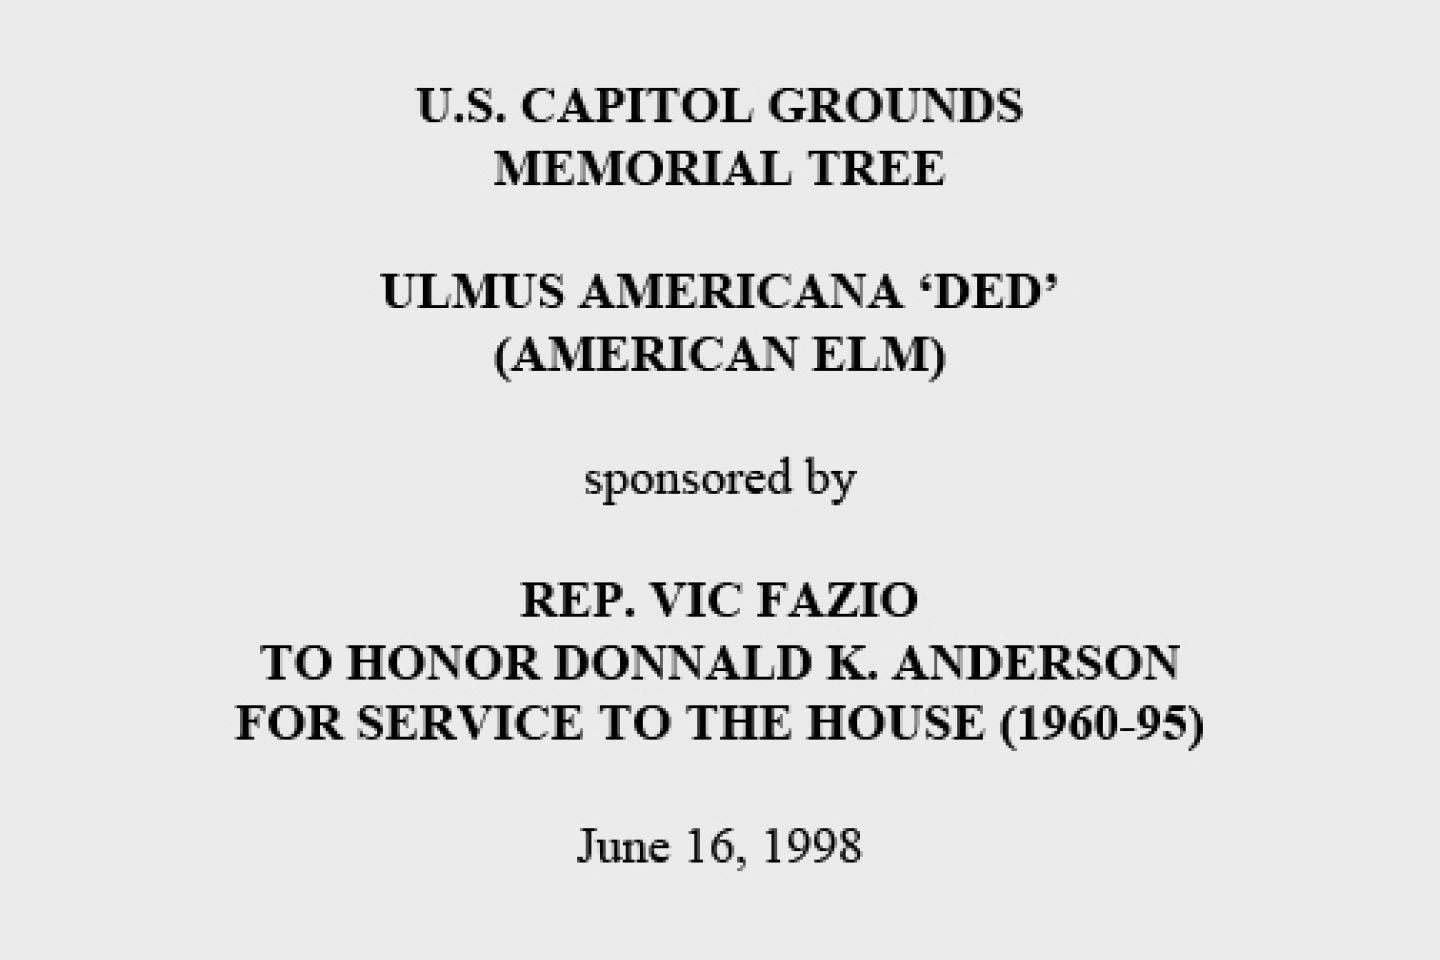 U.S. Capitol Grounds Memorial Tree  Ulmus americana 'ded' (American Elm)  sponsored by  Rep. Vic Fazio To Honor Donnald K. Anderson For Service to the House (1960-95)  June 16, 1998